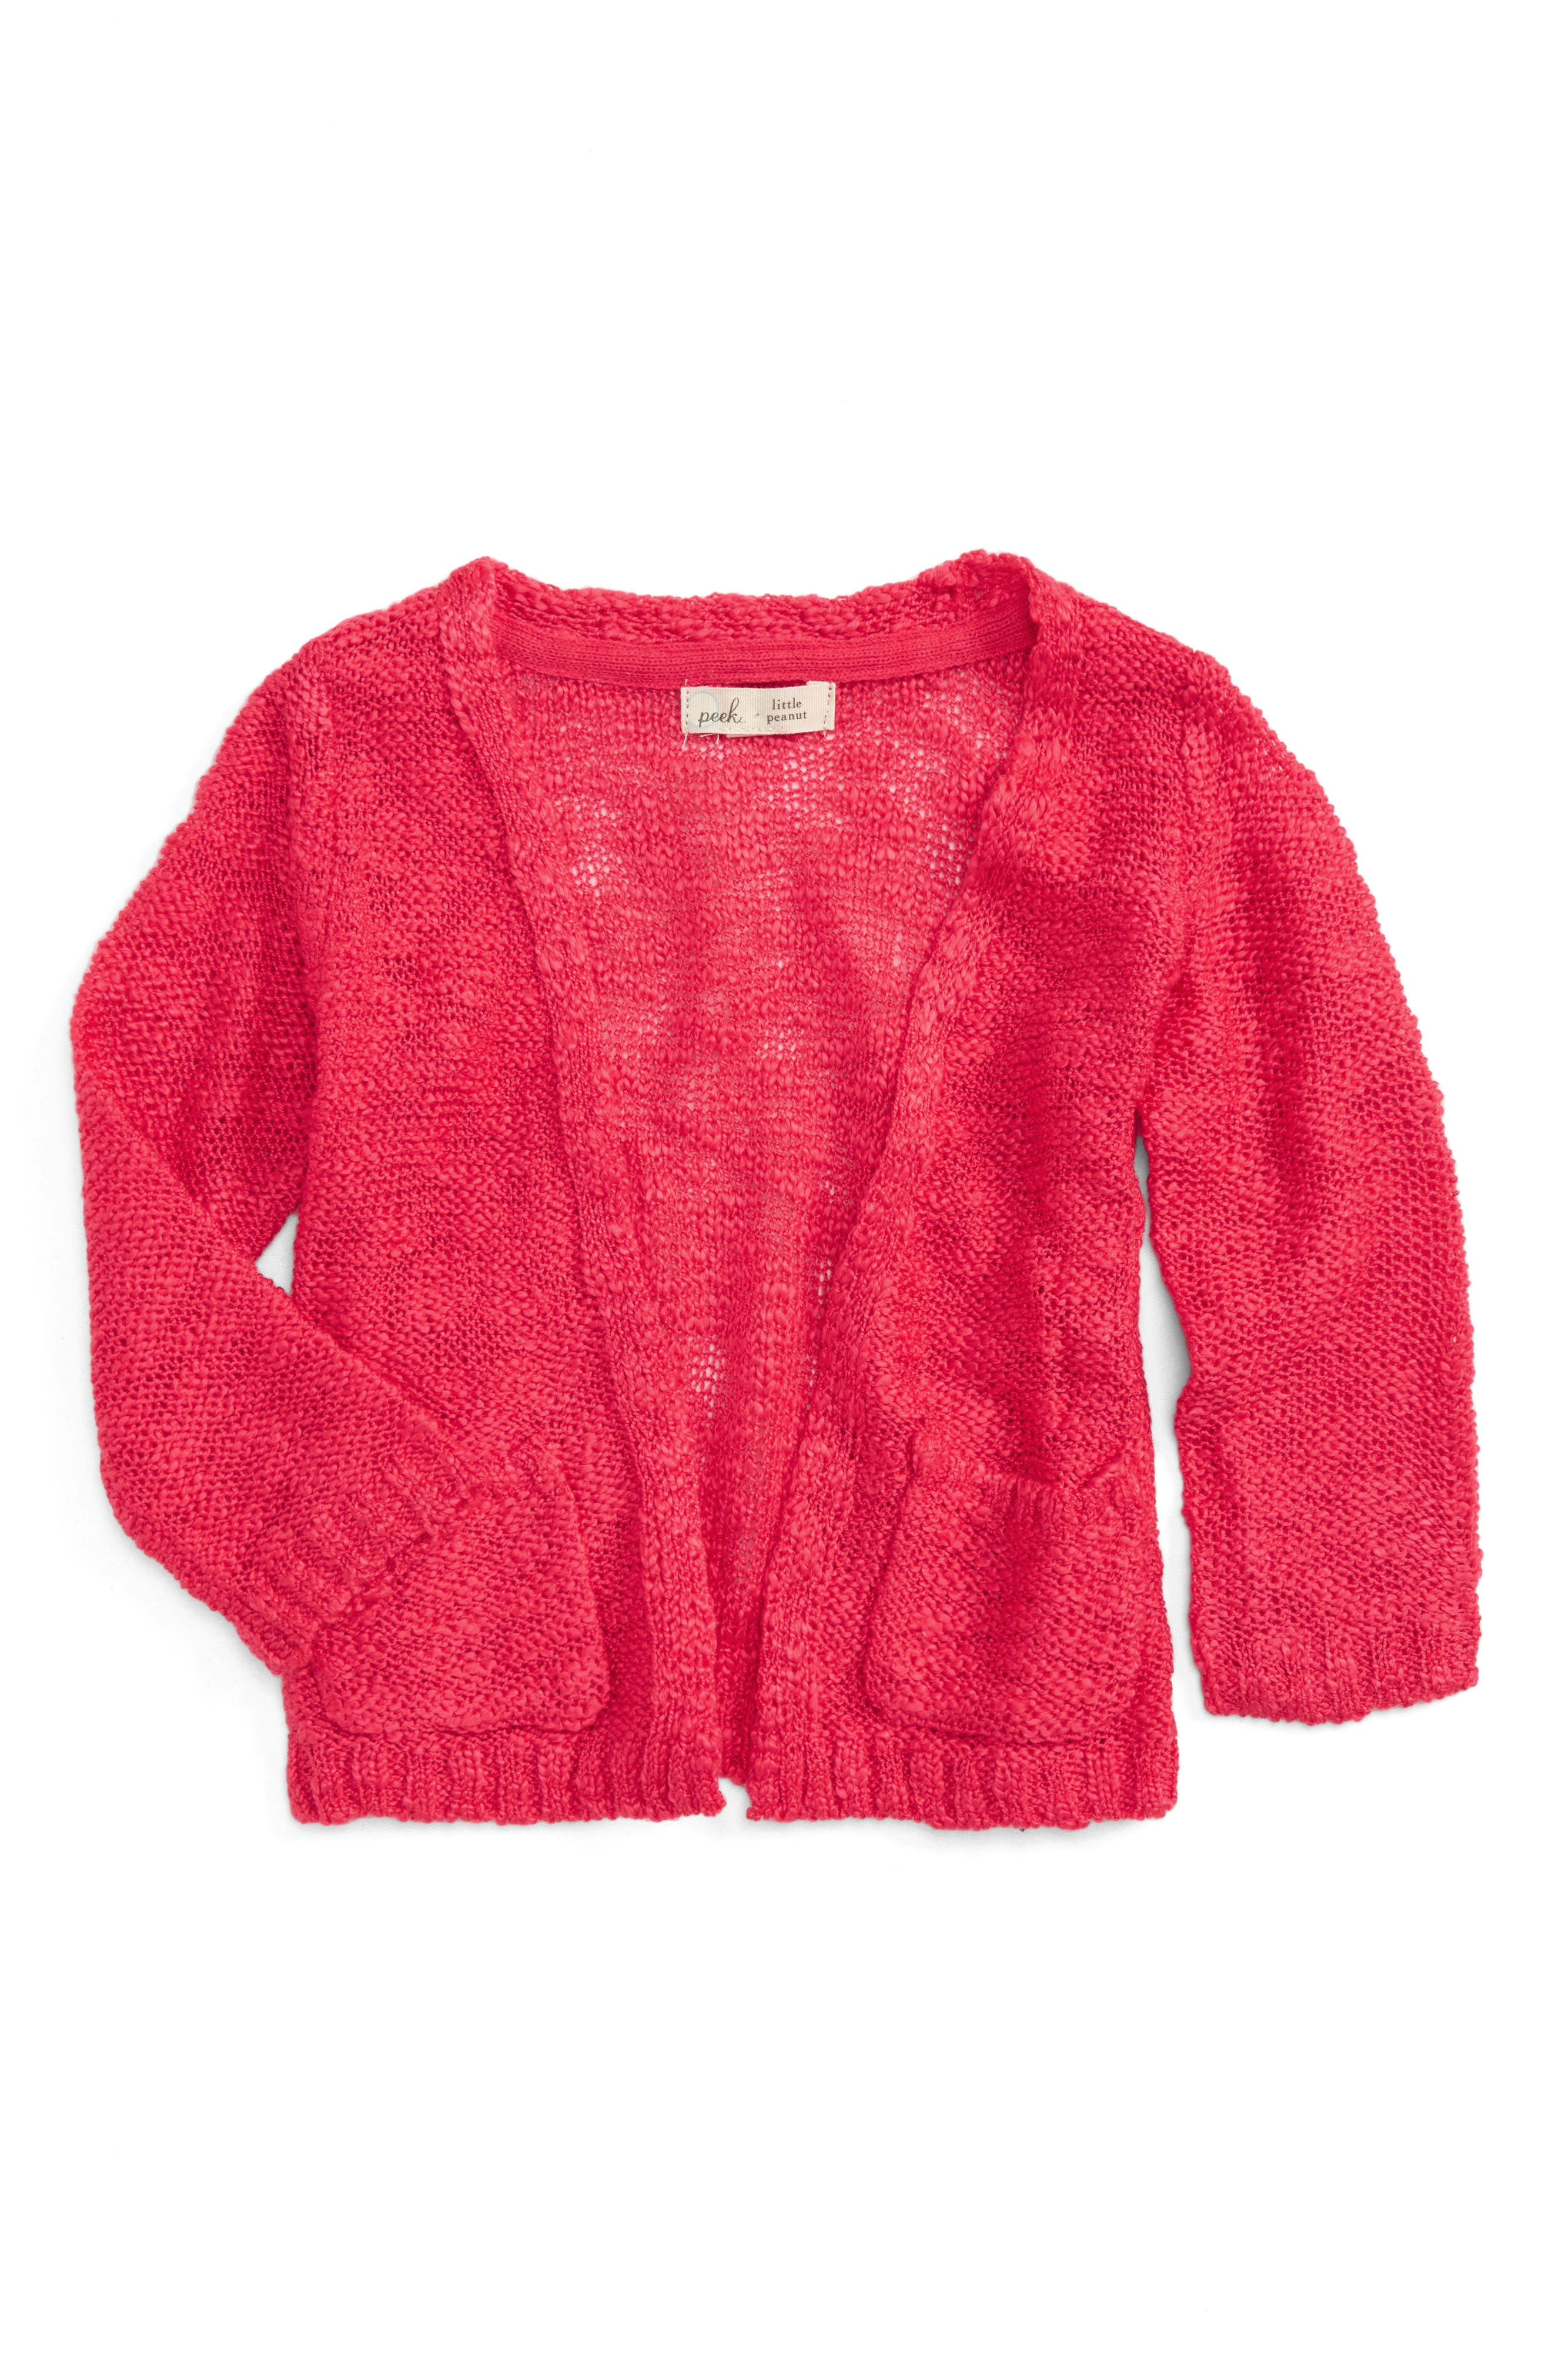 Cecile Cardigan,                         Main,                         color, Hot Pink